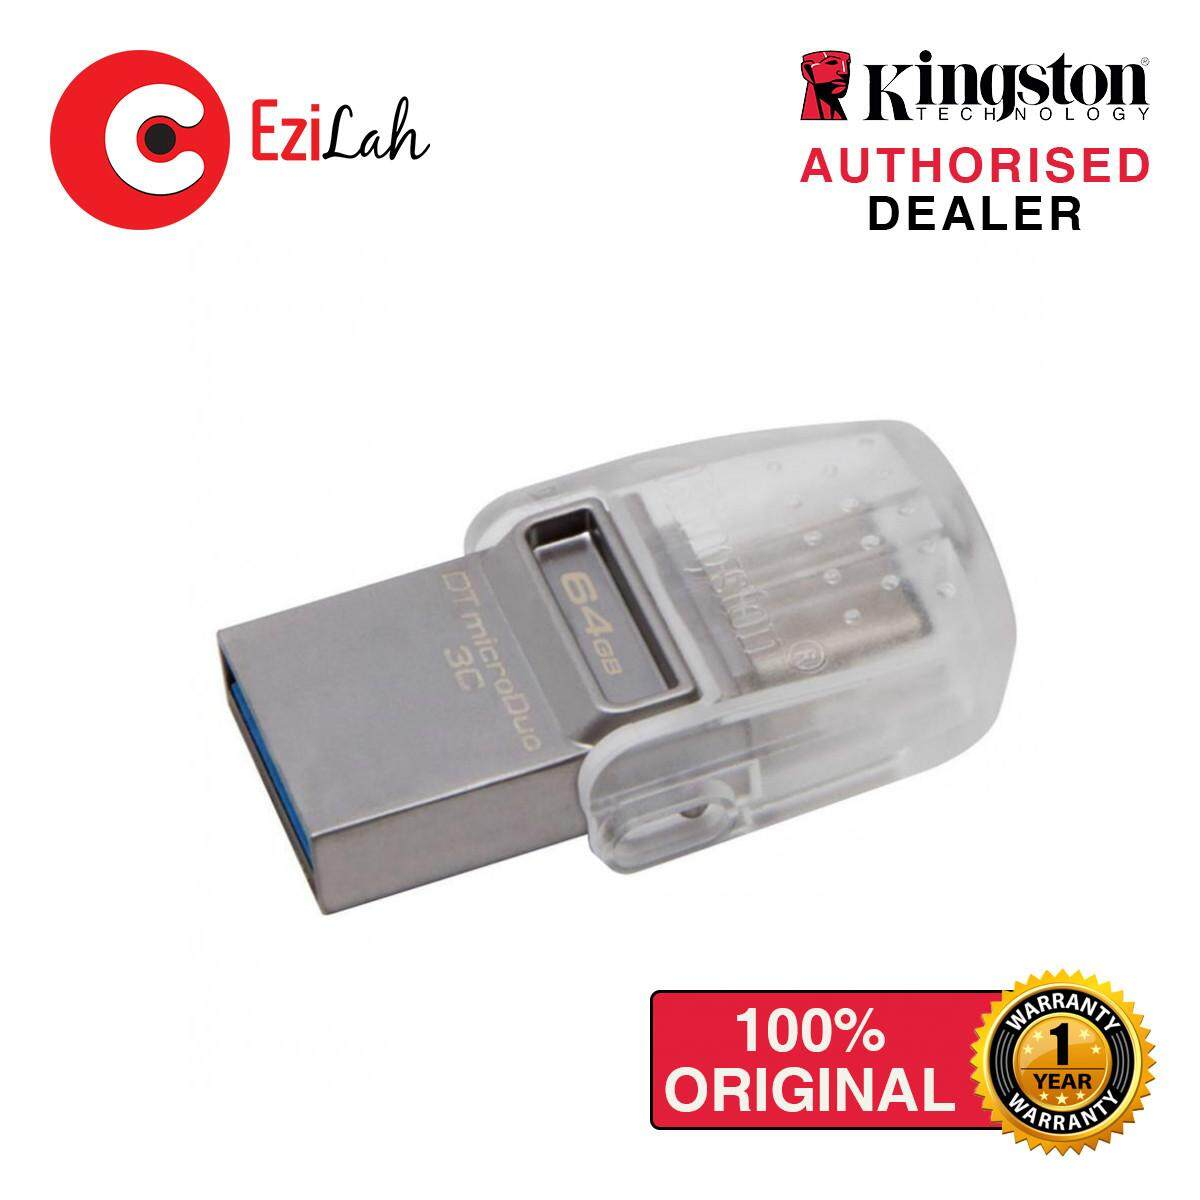 Masalah Besar Promosi Sandisk Ixpand Mini 64gb Otg Lightning Usb Ultra Dual Drive Type C 256gb Sdddc2 256g Kingston Flash Datatraveler Microduo 3c Dtduo3c